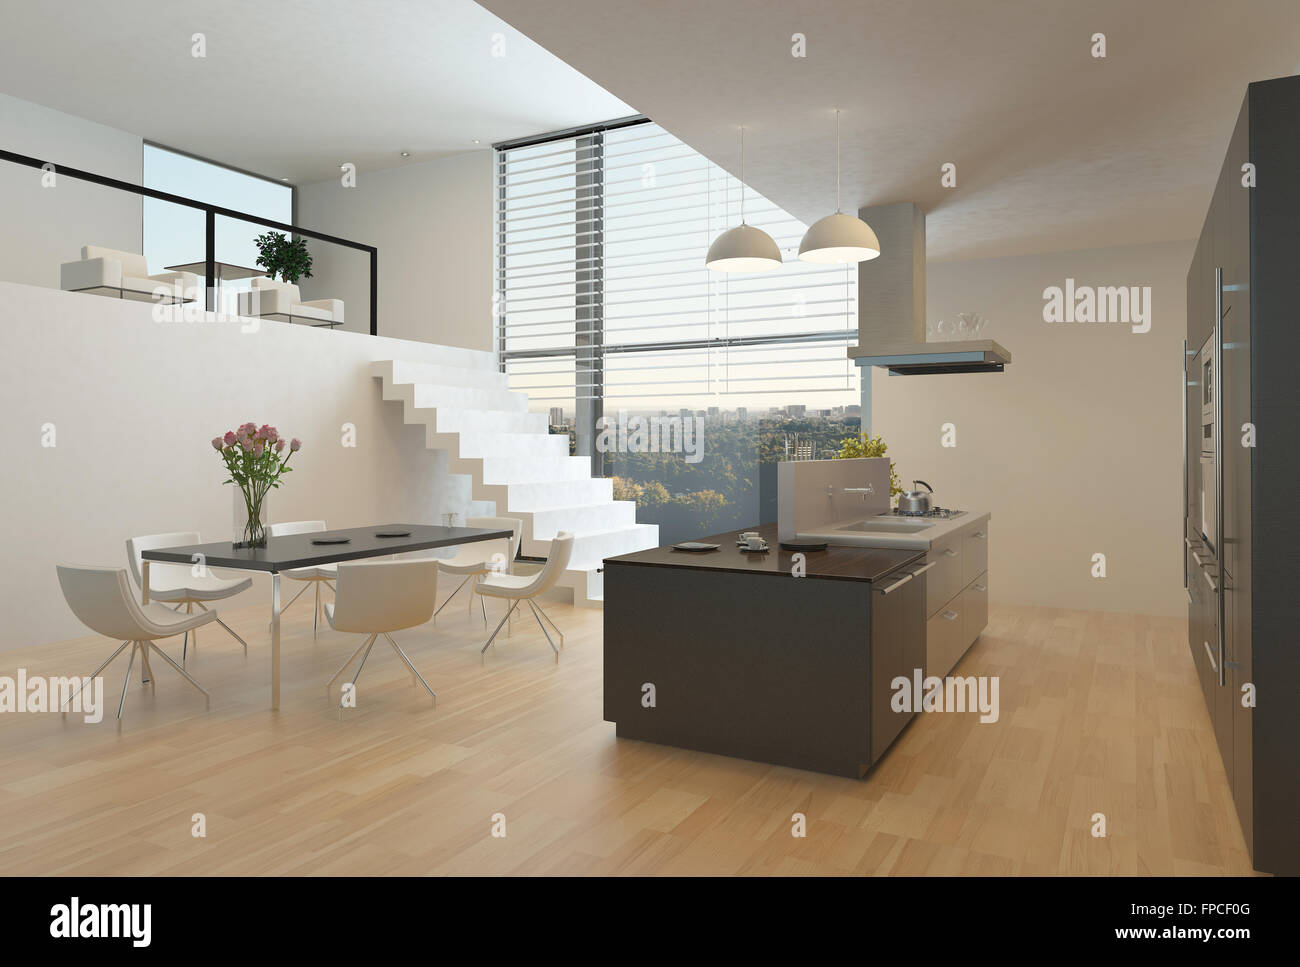 Modern kitchen interior with a central hob, wall units, dining table ...